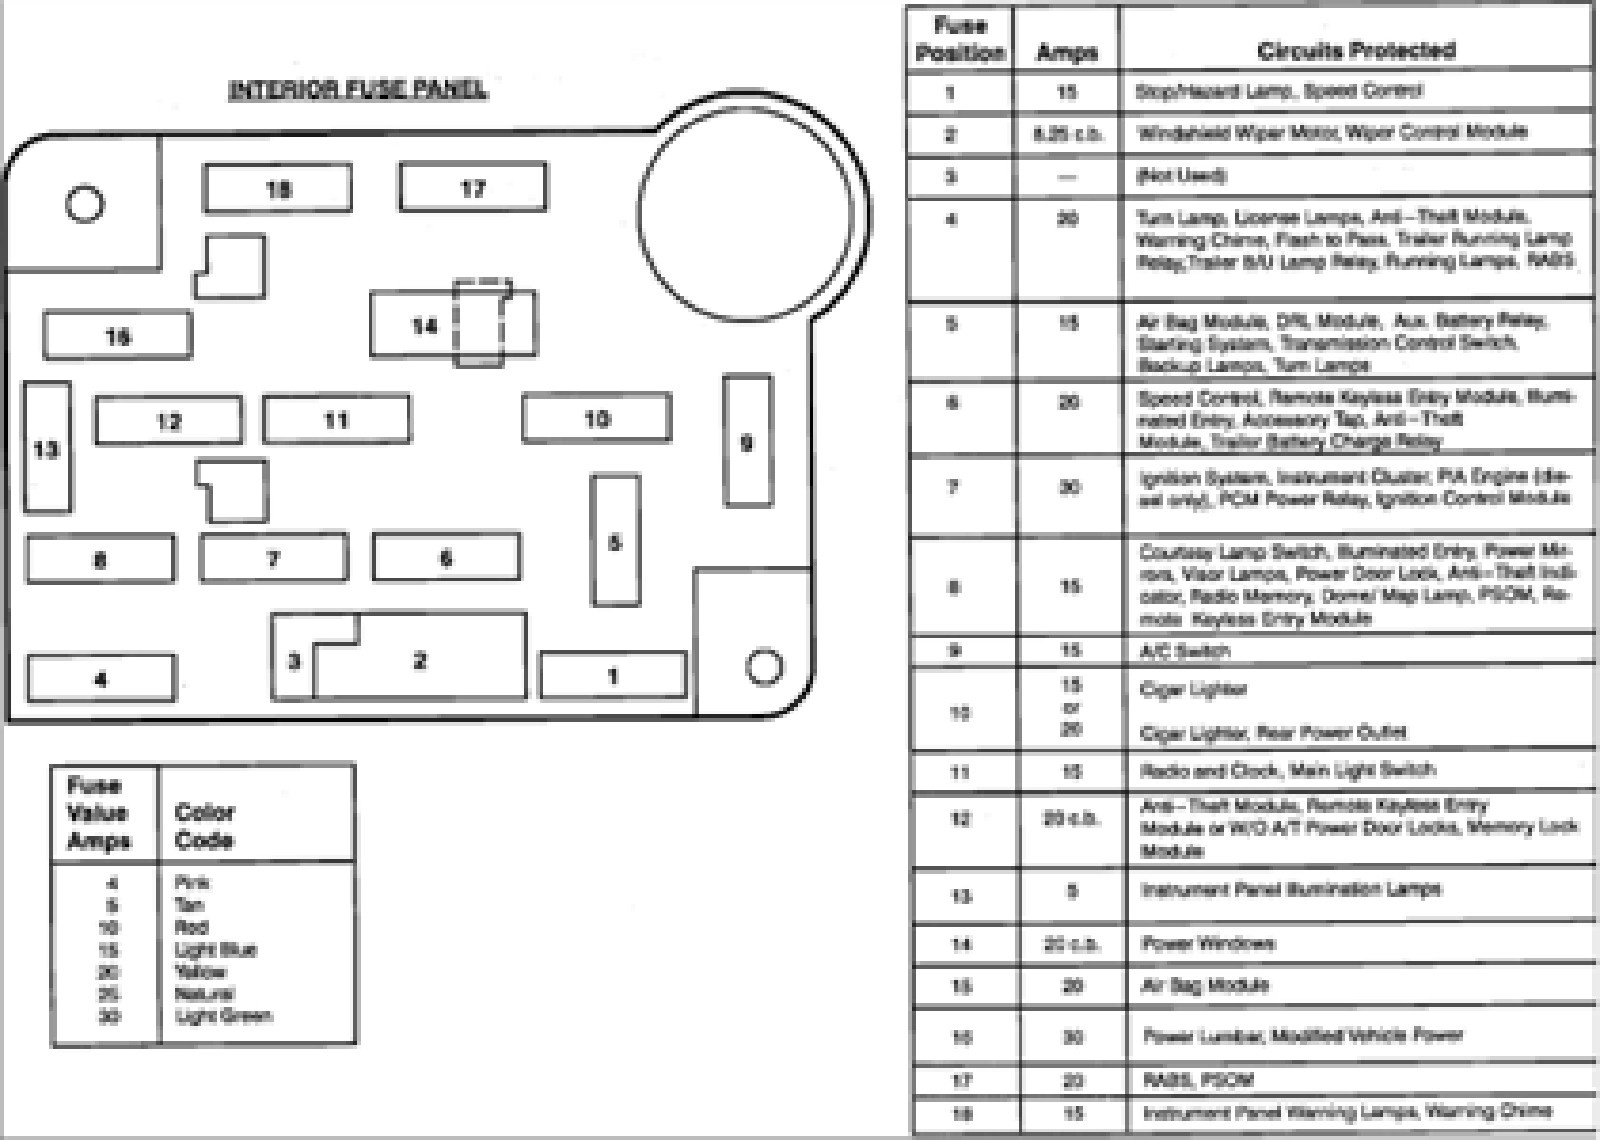 Econoline Fuse Box Wiring Library Cd Player Diagram Http Wwwjustanswercom Ford 3gdn8dual For A 1993 Van Mark 3